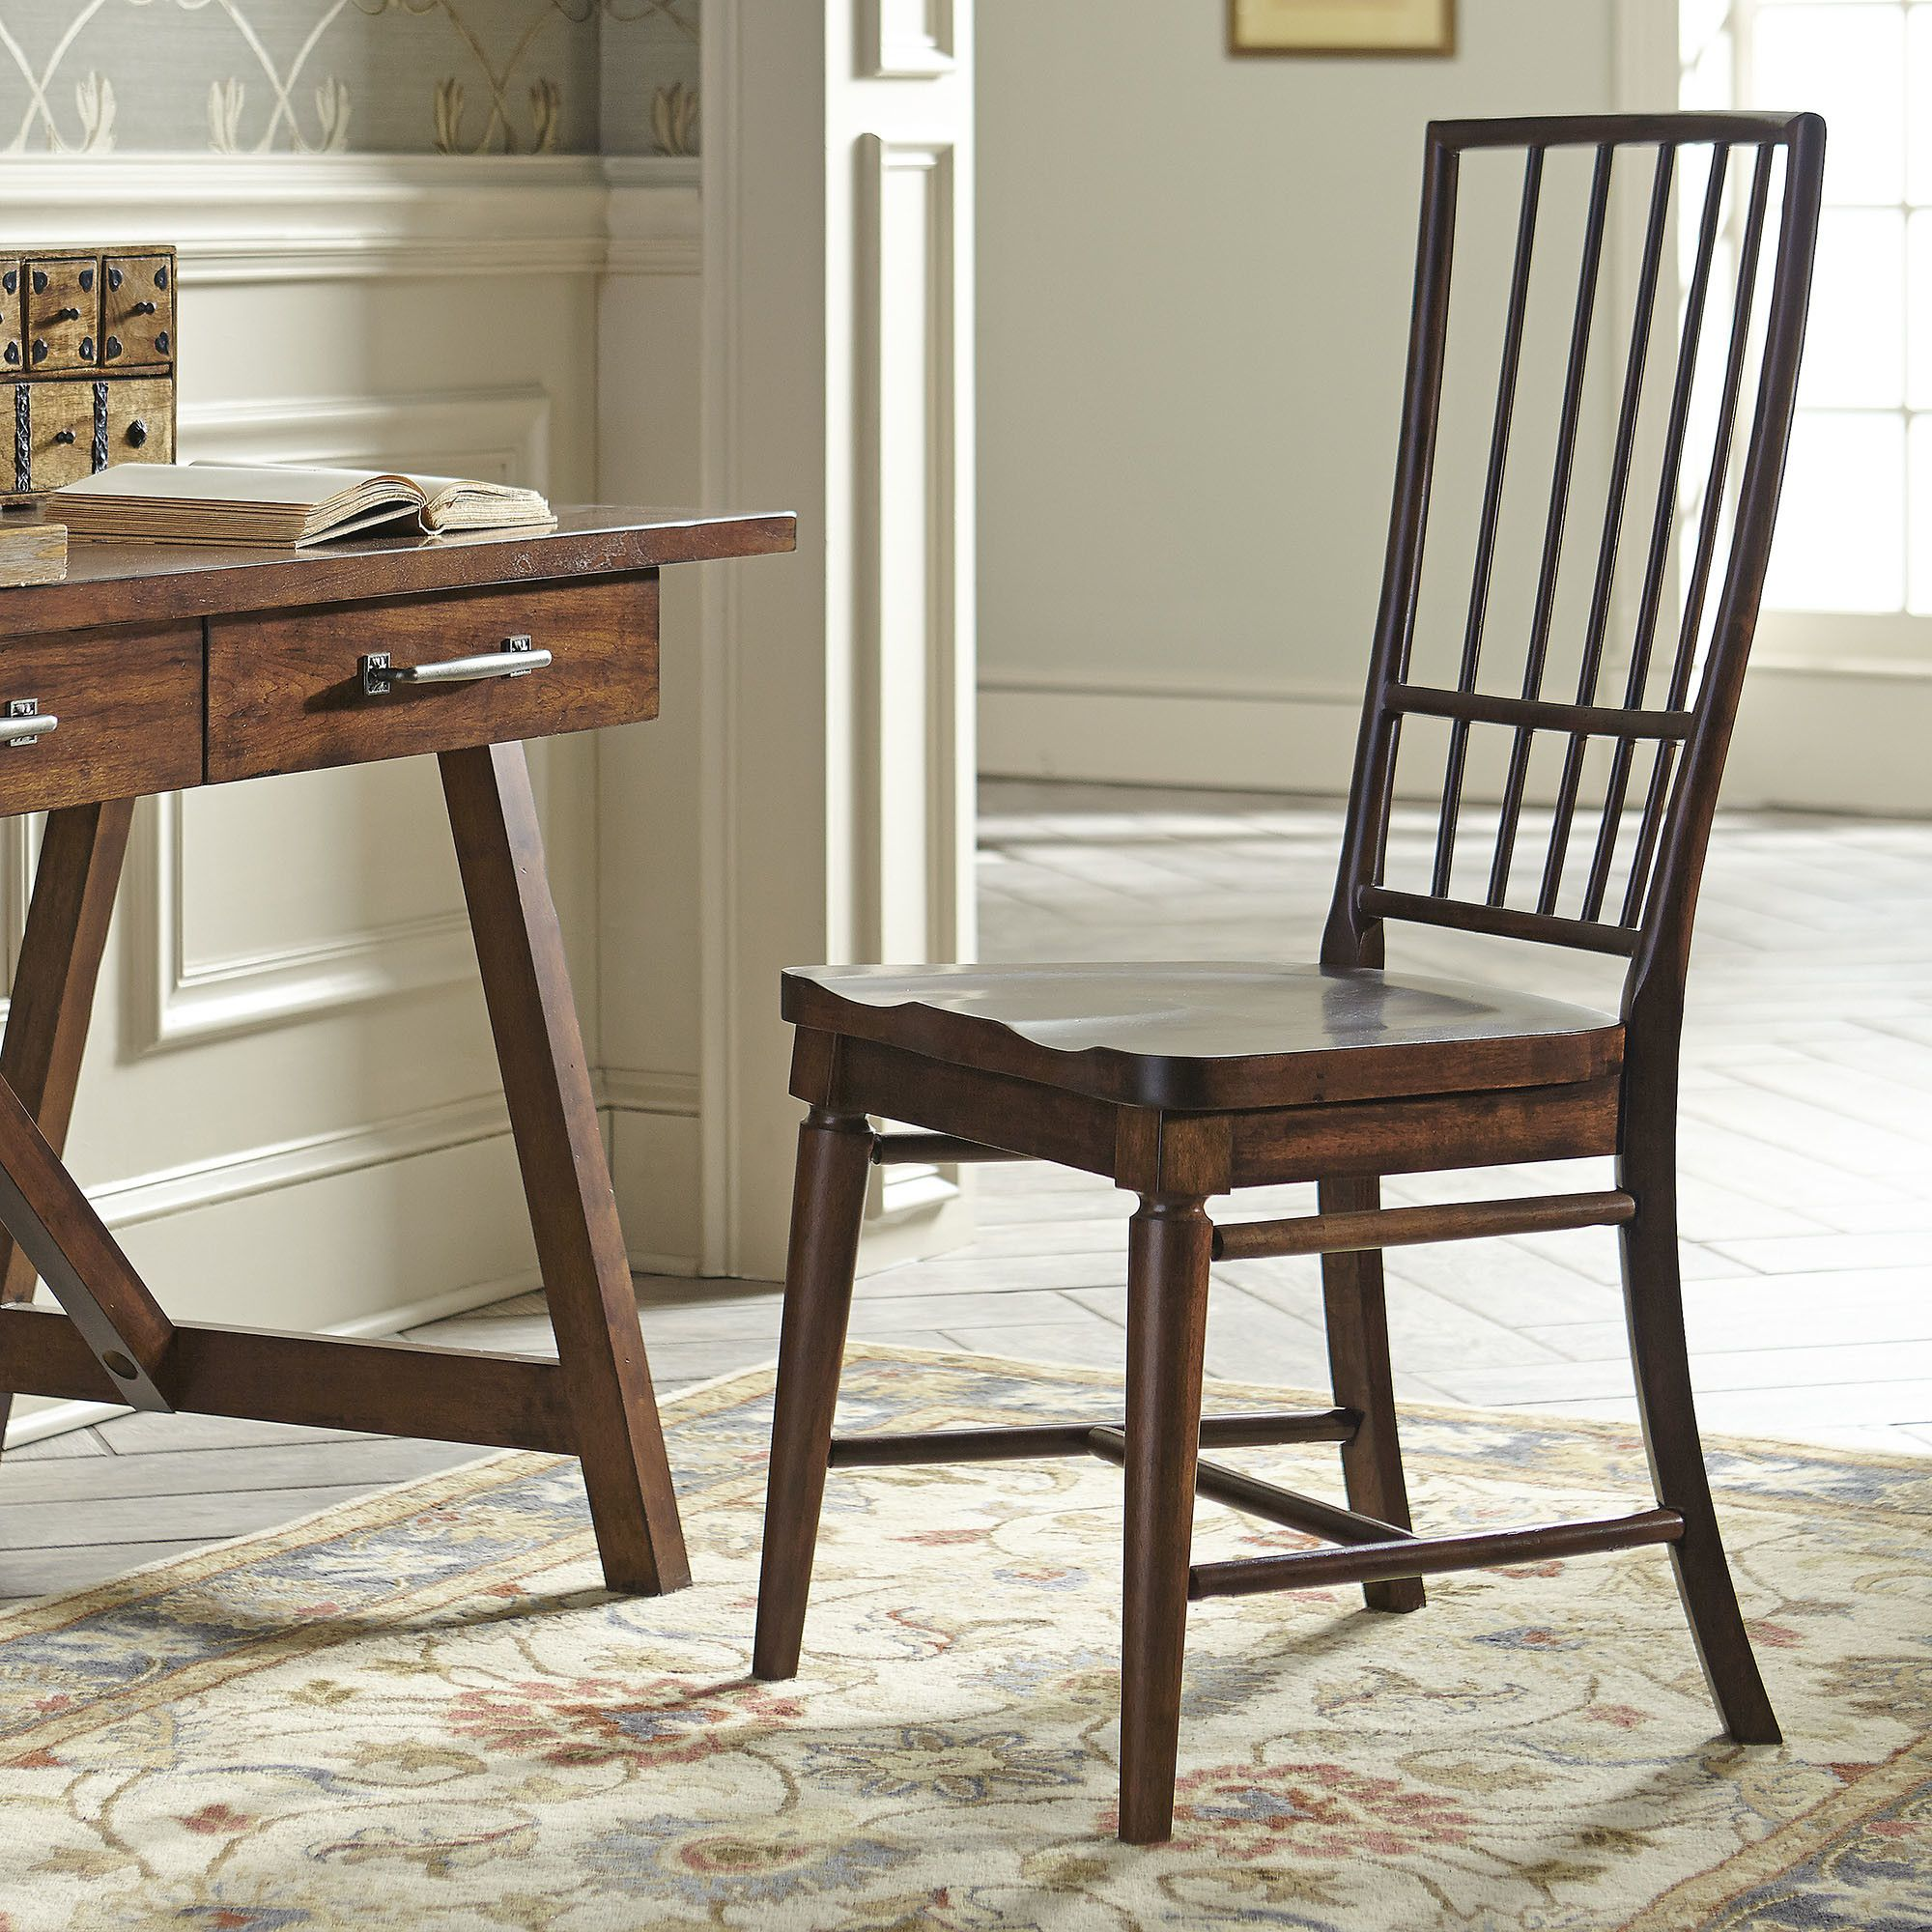 Lisbon Rake-Back Dining Chair | Solid wood dining chairs